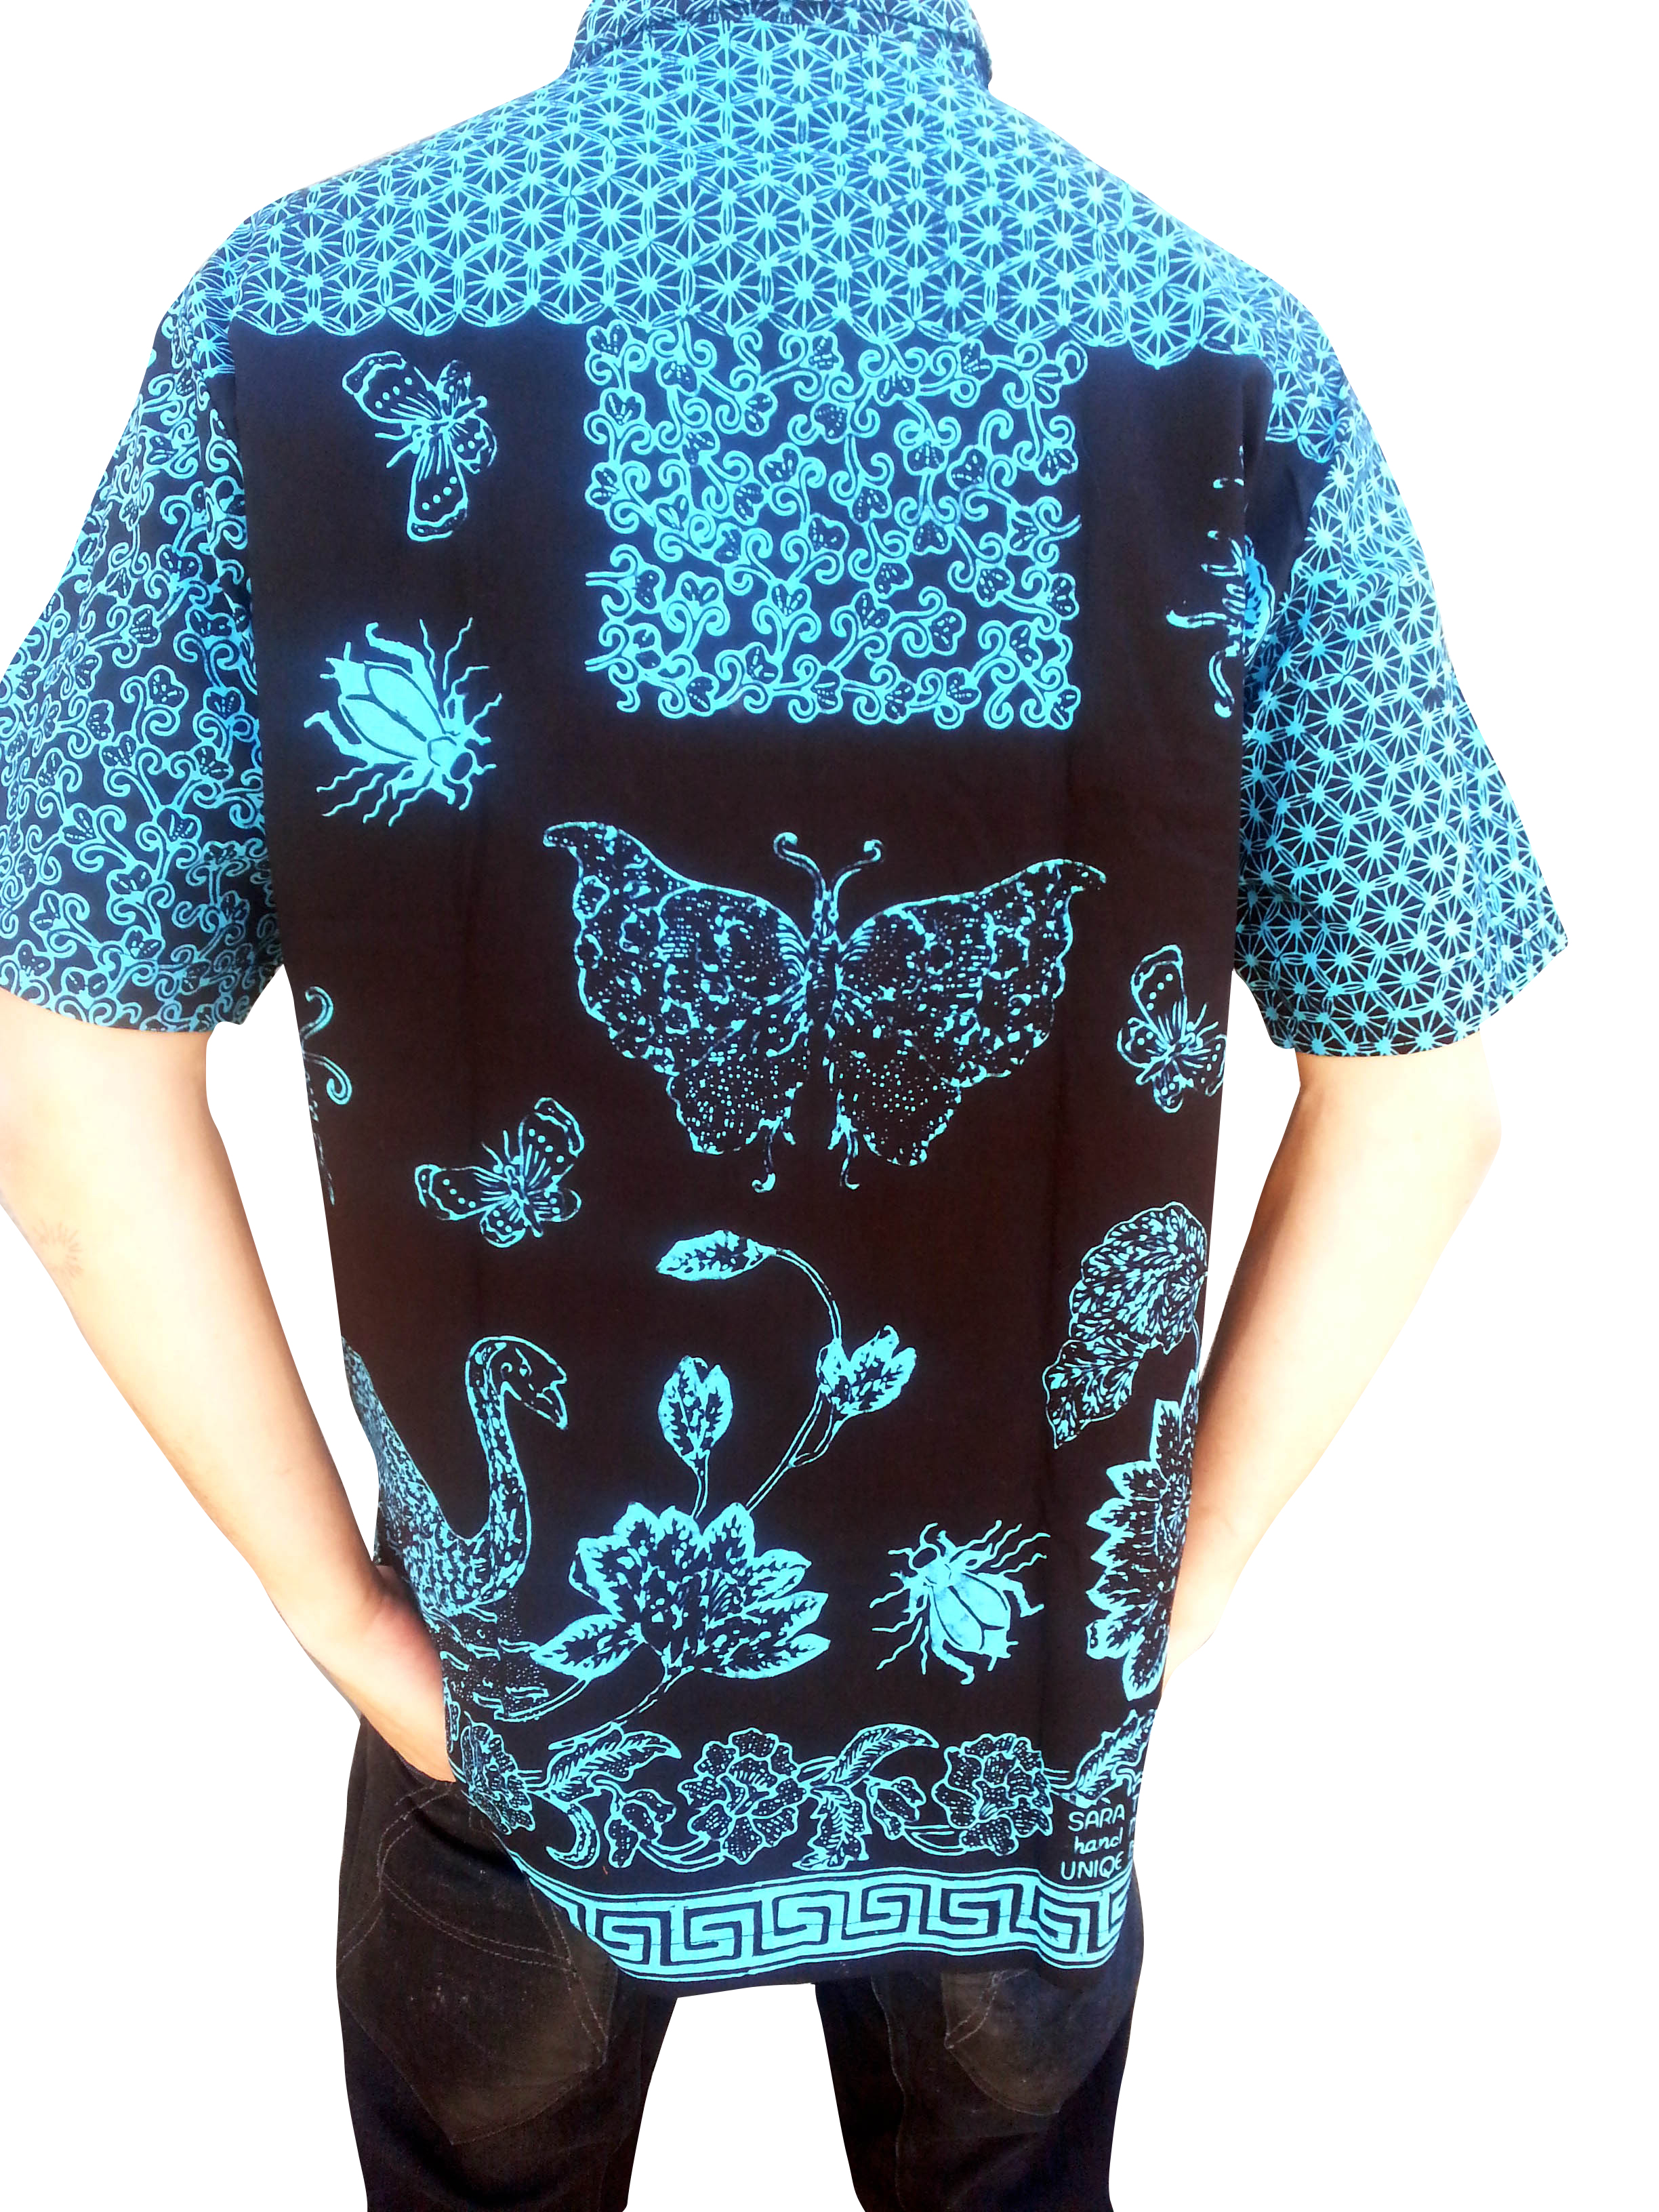 nature batik shirt. Black Bedroom Furniture Sets. Home Design Ideas